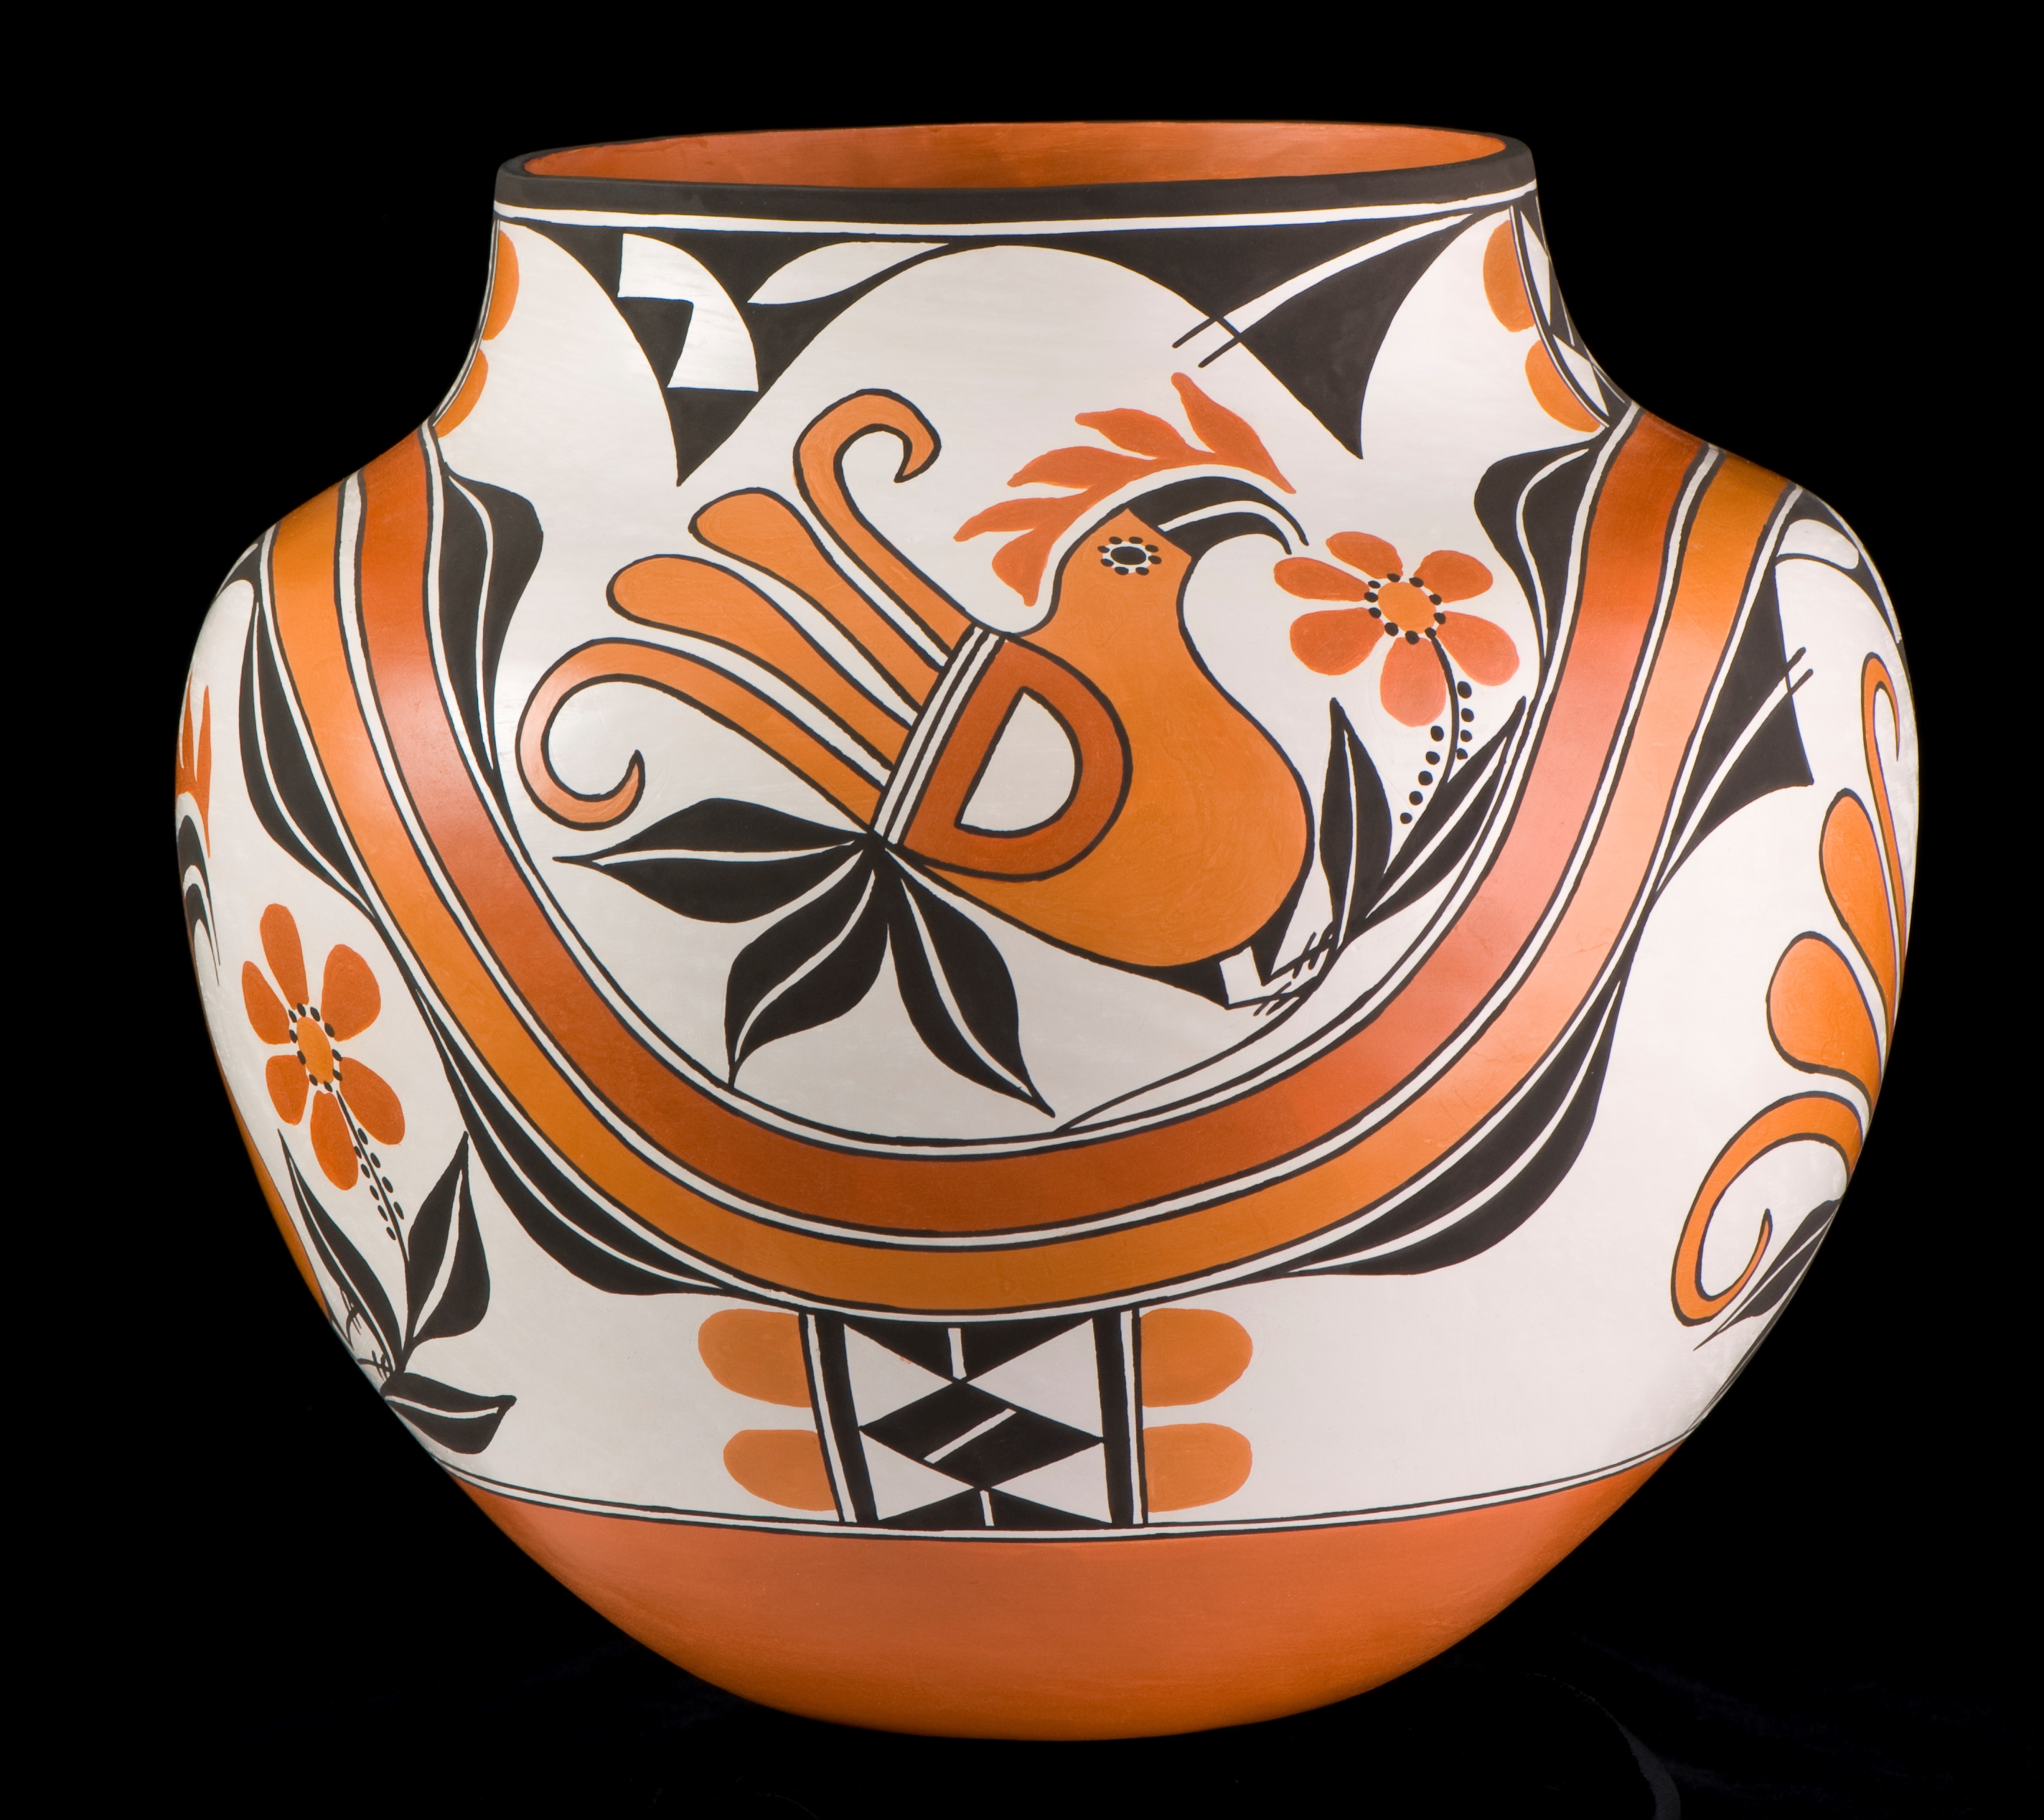 Olla. By Robert and Melody Patrico (Acoma Pueblo), 2007. National Cowboy & Western Heritage Museum.